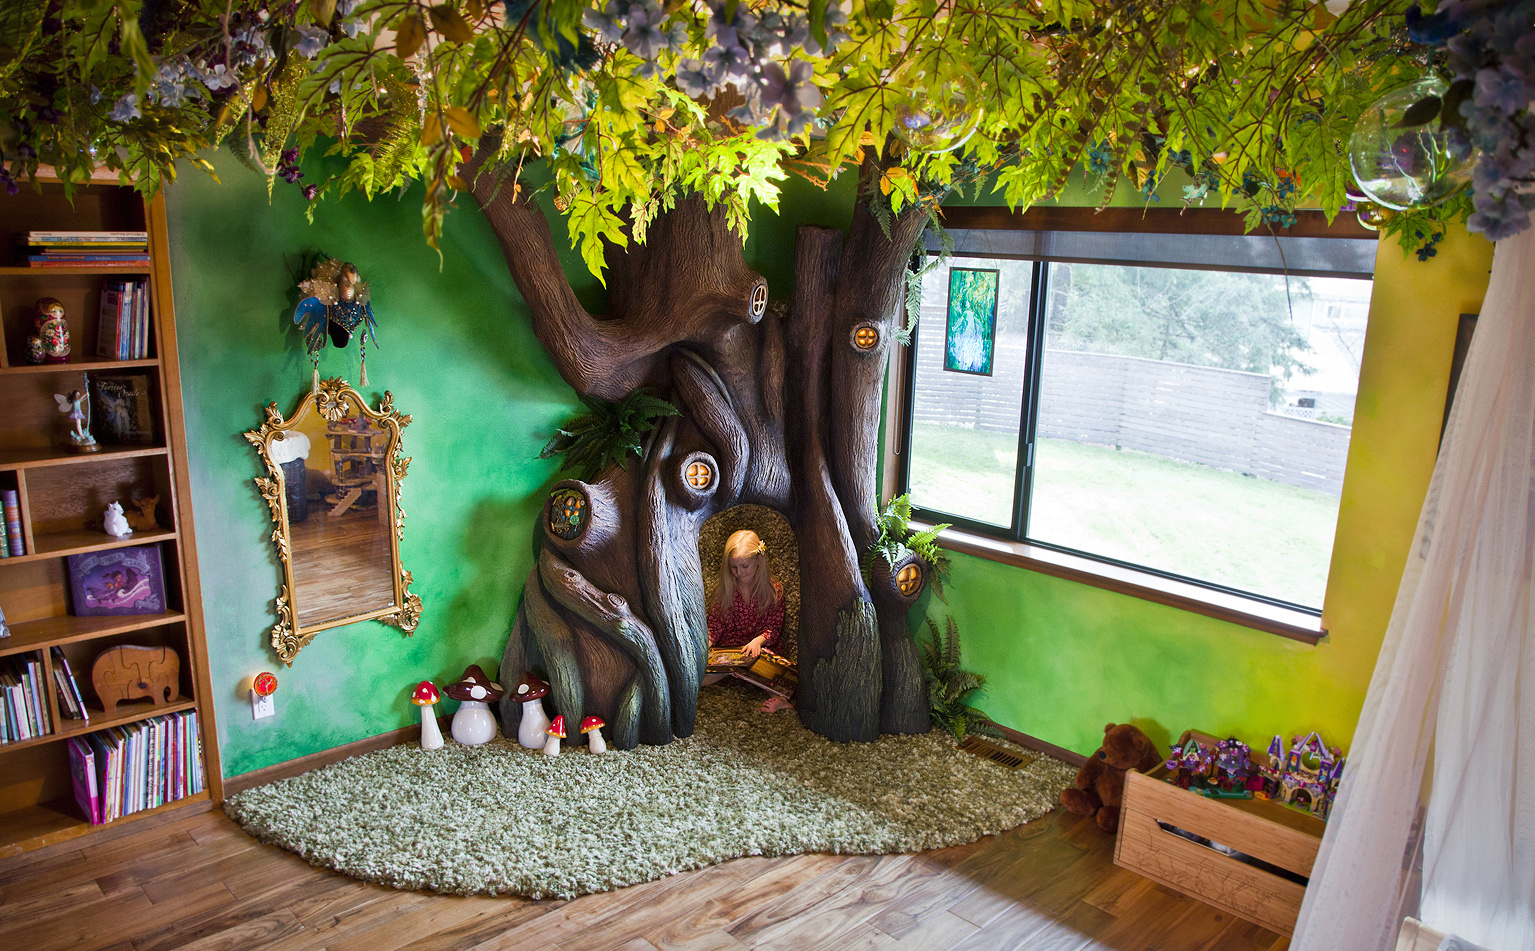 Dad Builds Insanely-Detailed Magical Treehouse in Daughter's Bedroom